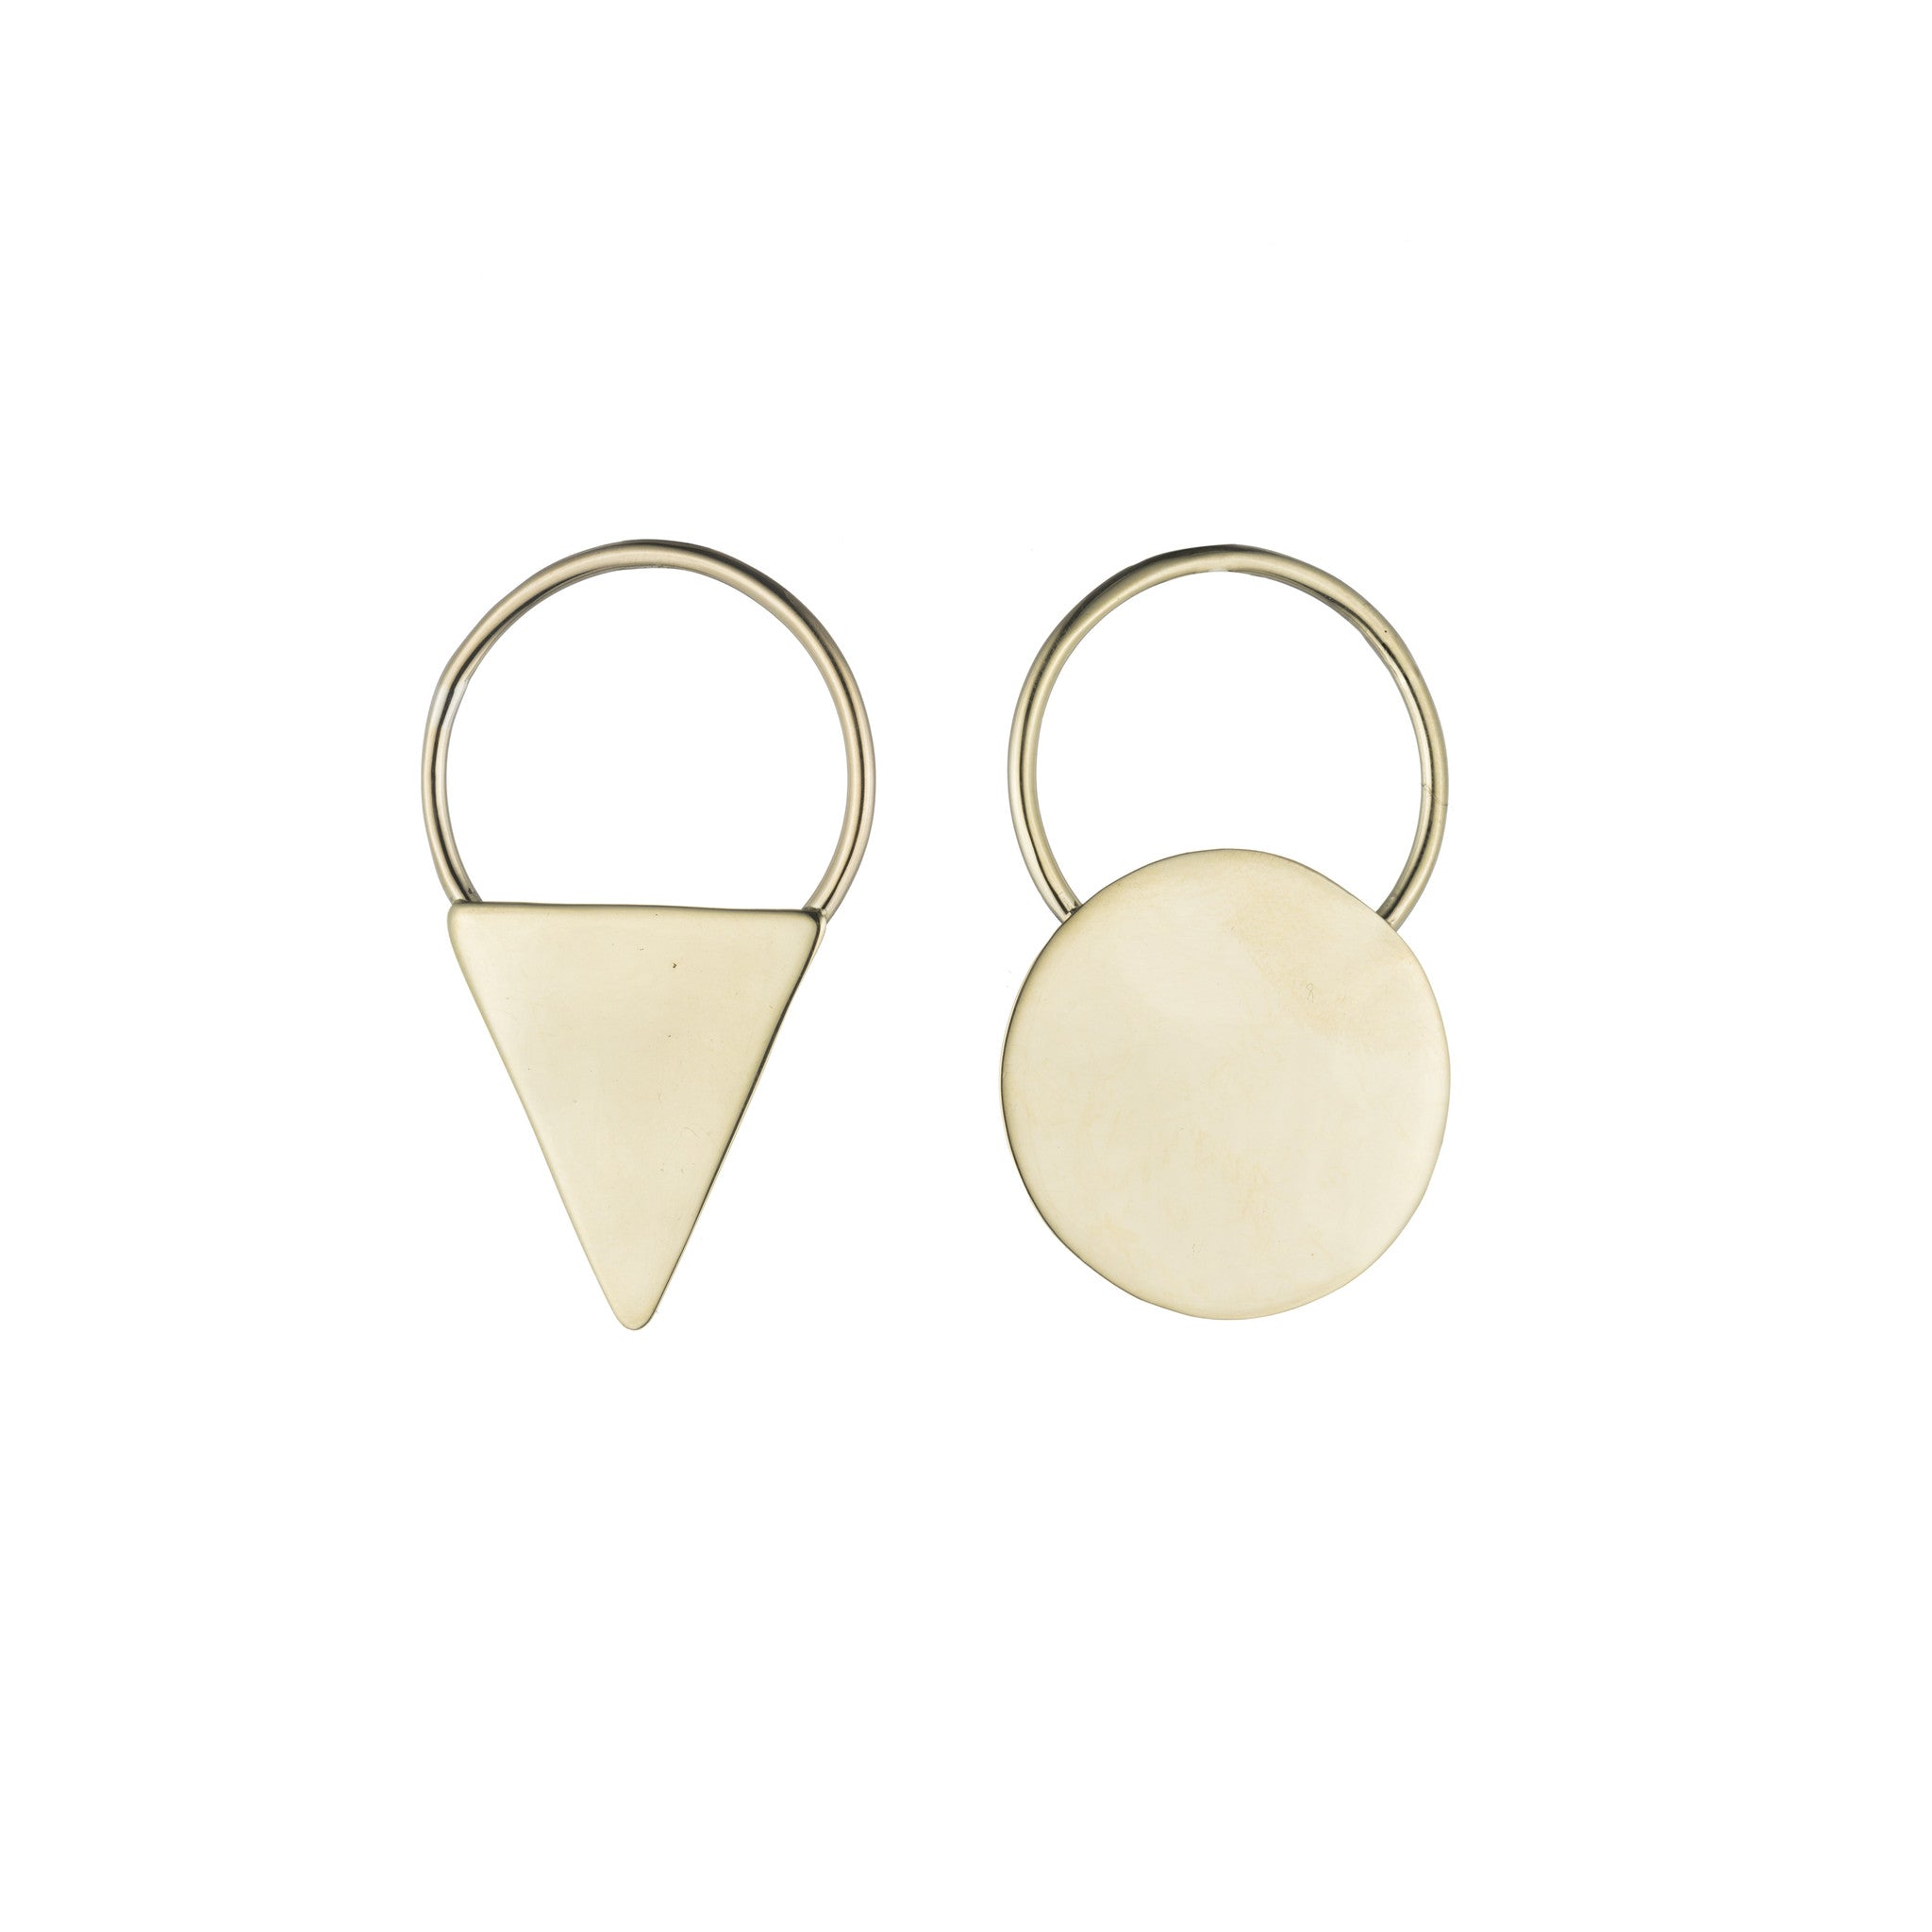 T & C Earrings